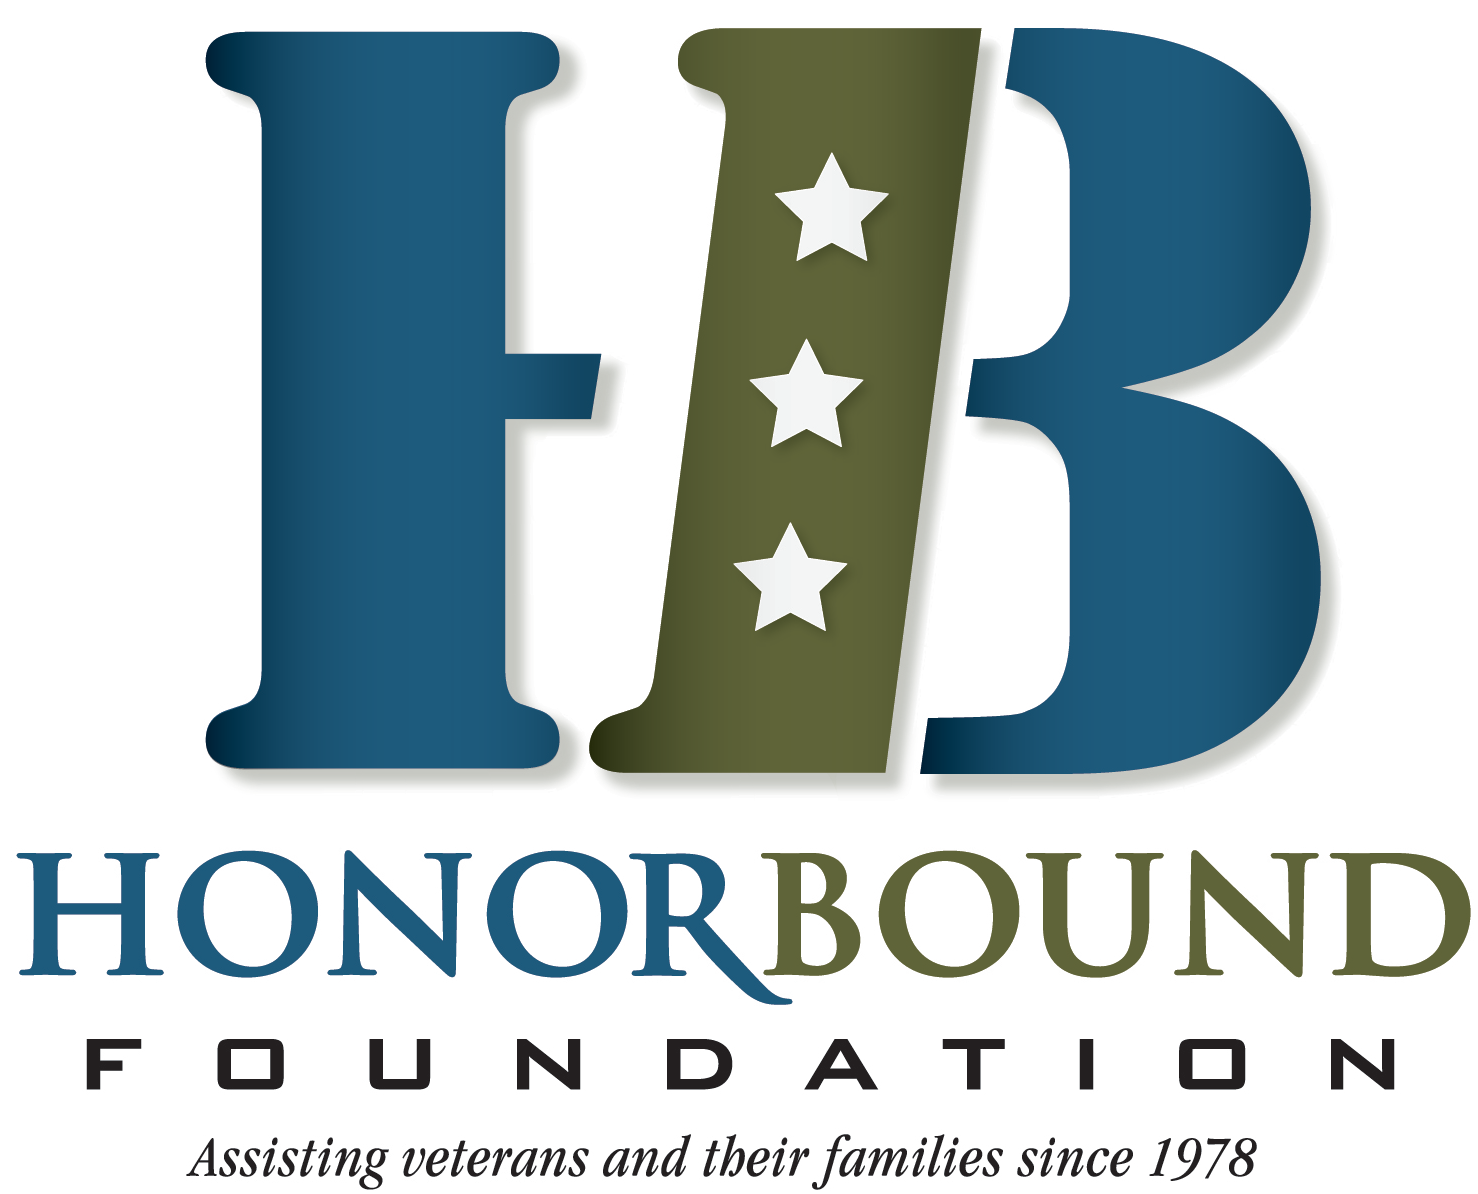 Car Donations to Connecticut Charities - HonorBound Foundation - DonatecarUSA.com